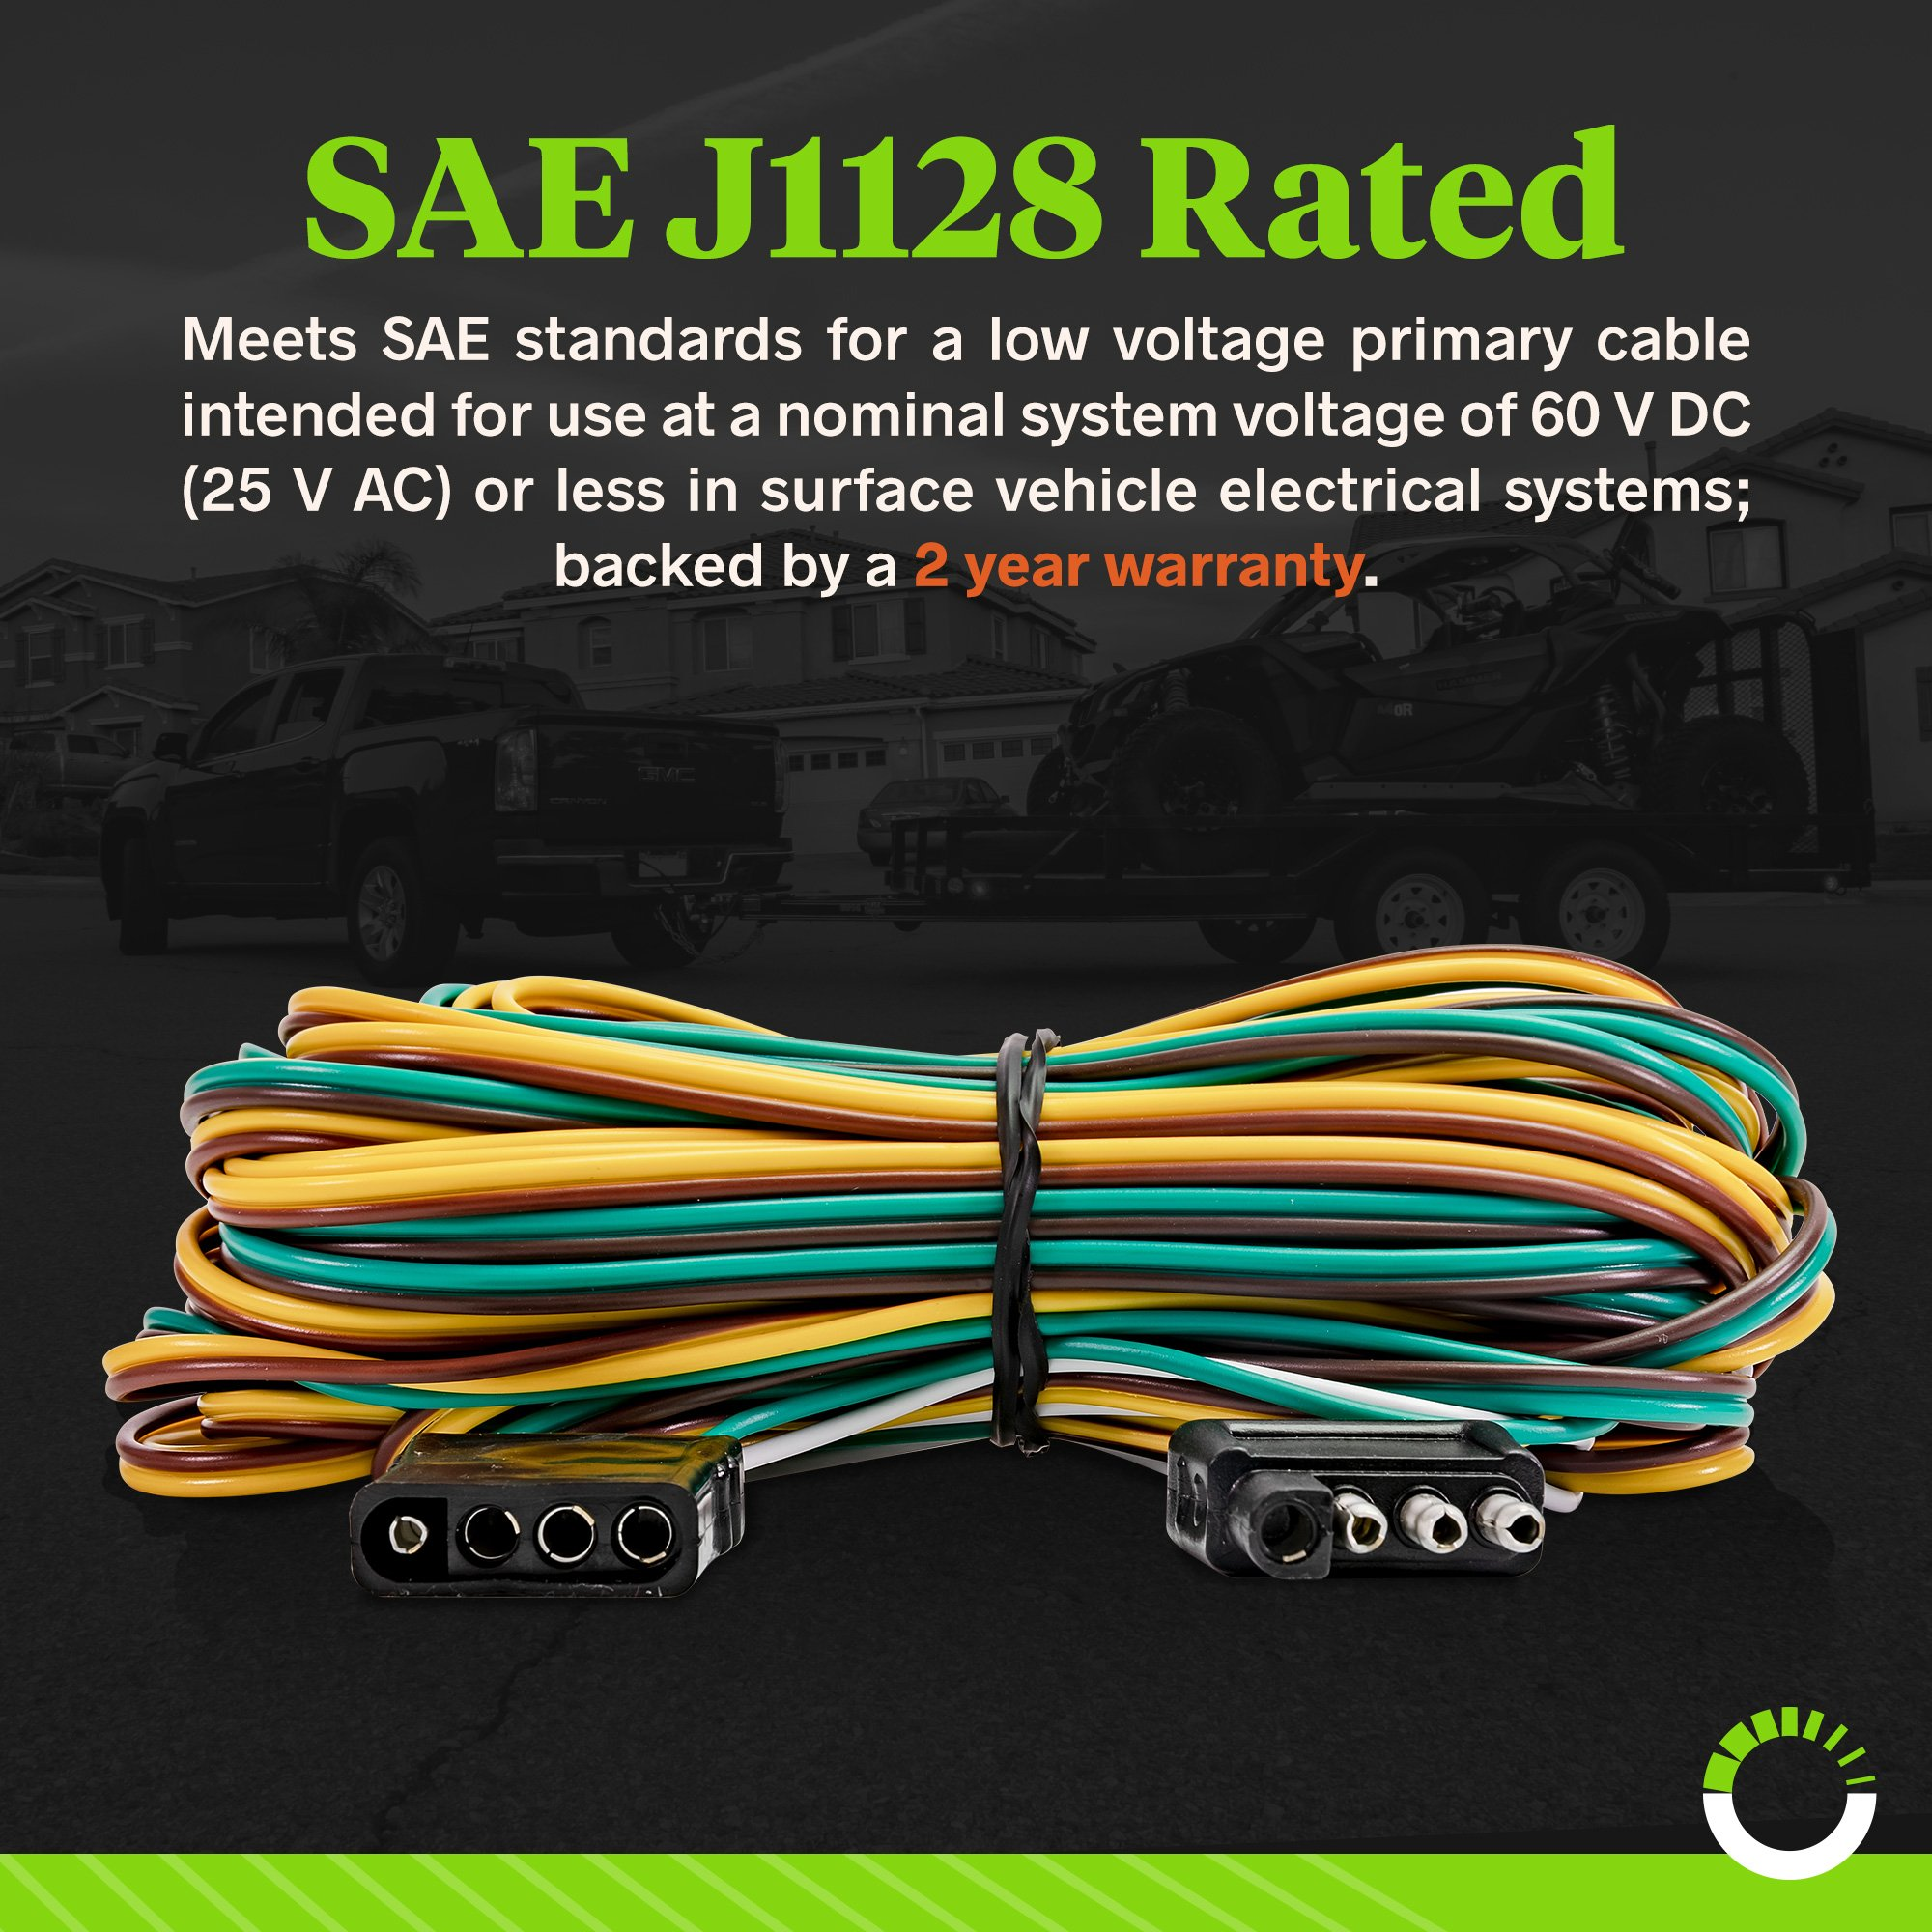 online led store 4-way flat wishbone-style trailer wiring harness kit [25'  male & 4' female] [18 awg color coded wires] [sae j1128 rated] with 4 flat